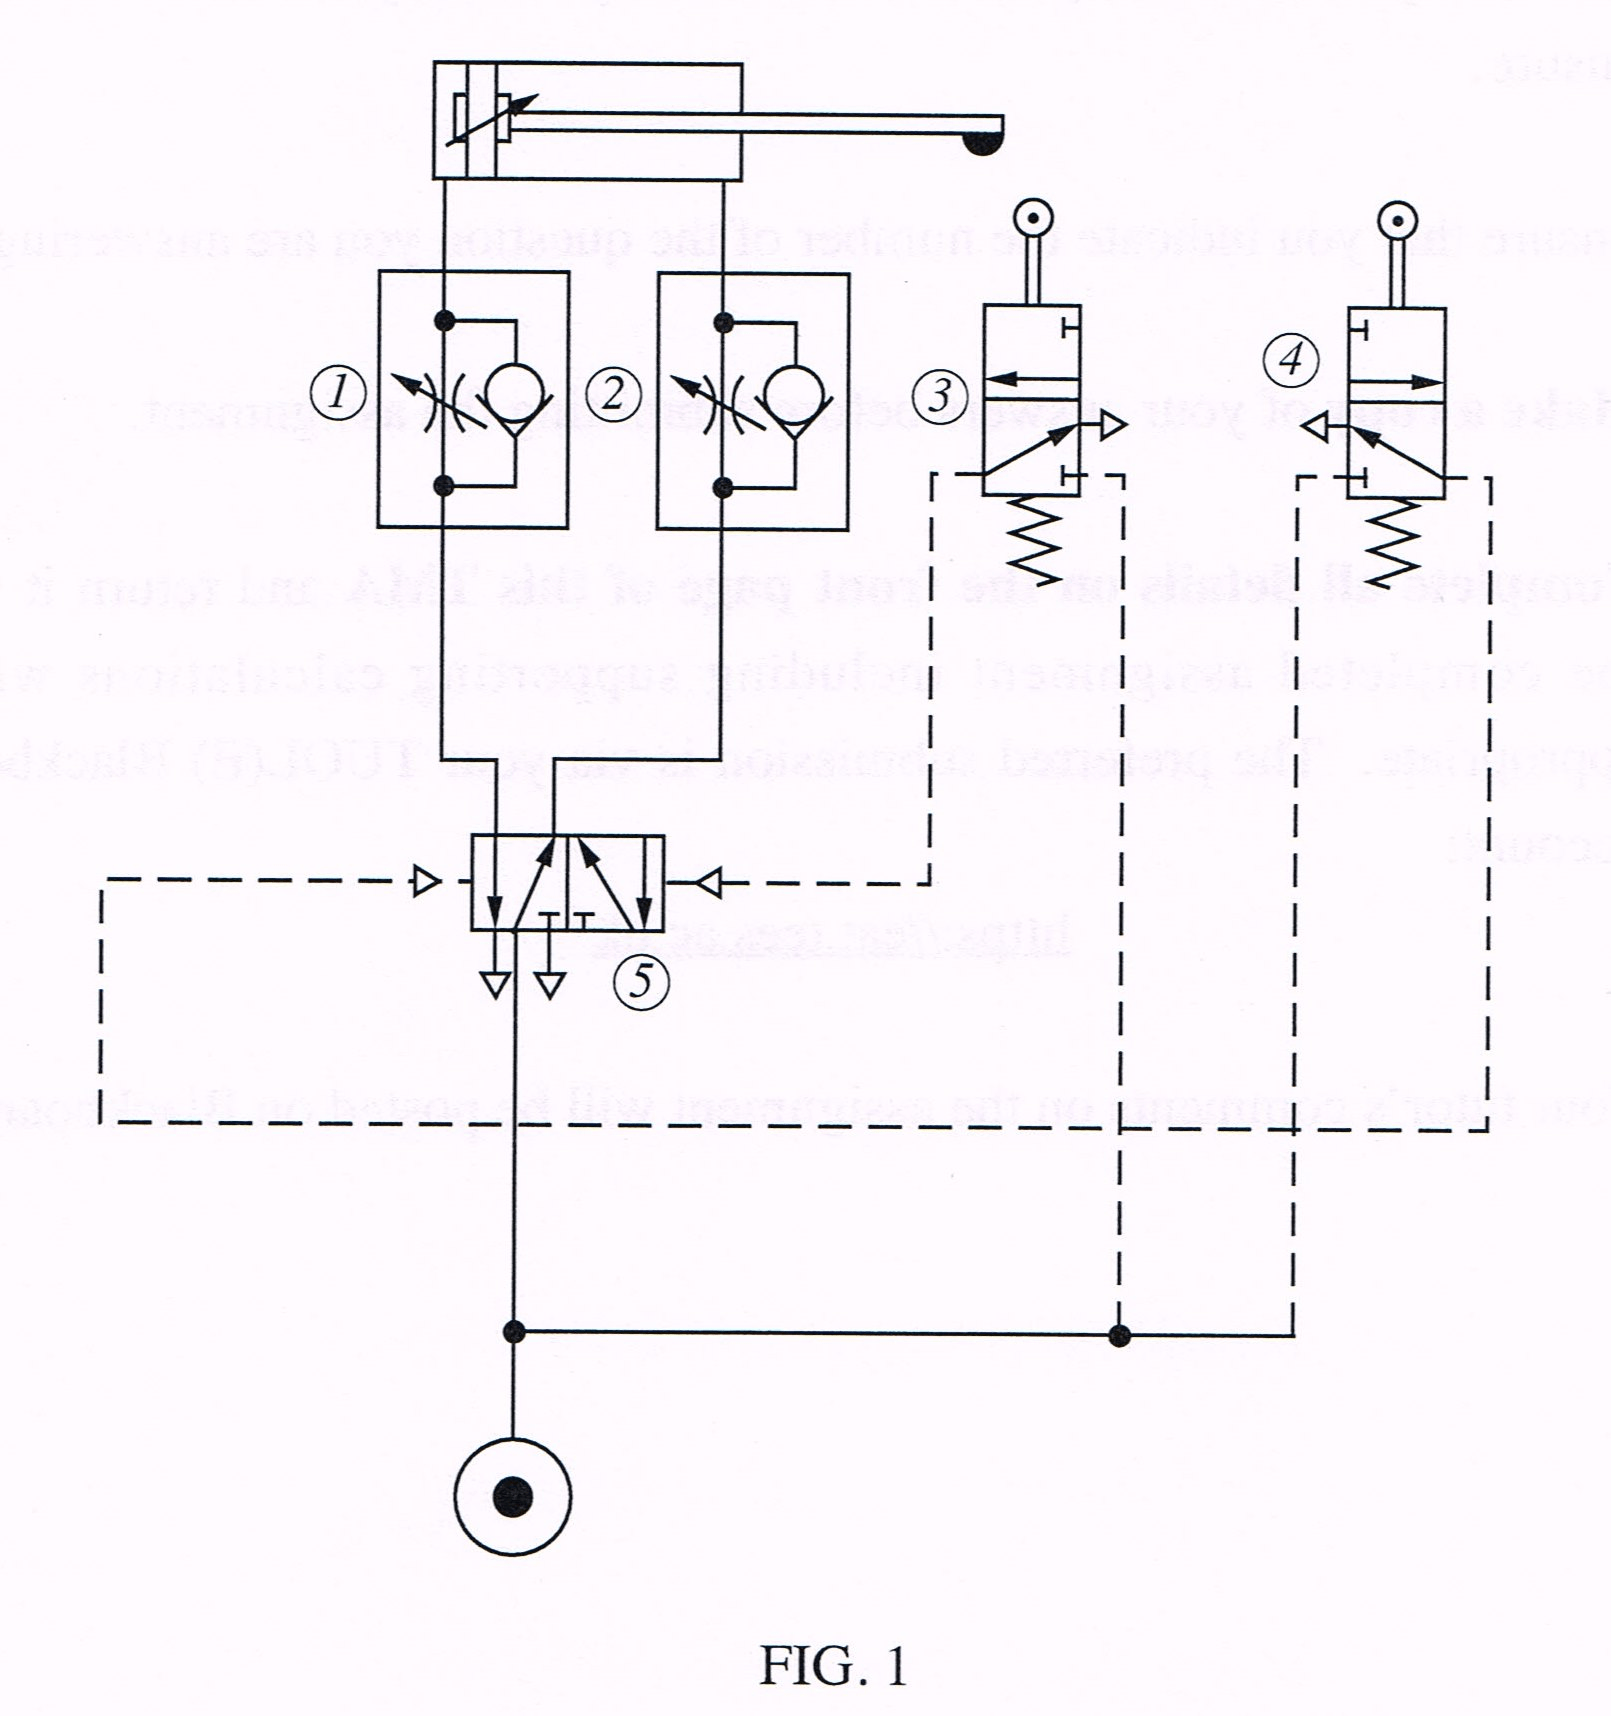 [WRG-4948] Pneumatics Wiring Diagram With Actuators